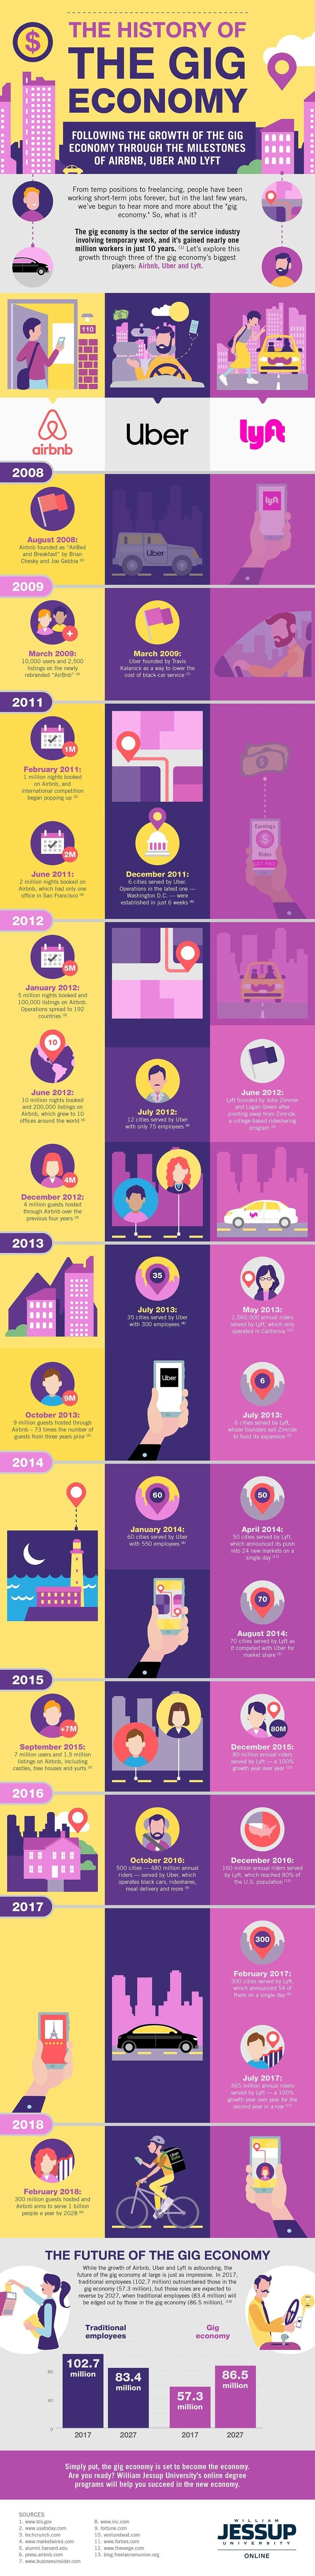 The Gig Economy: Present, Past, Future #unfographic